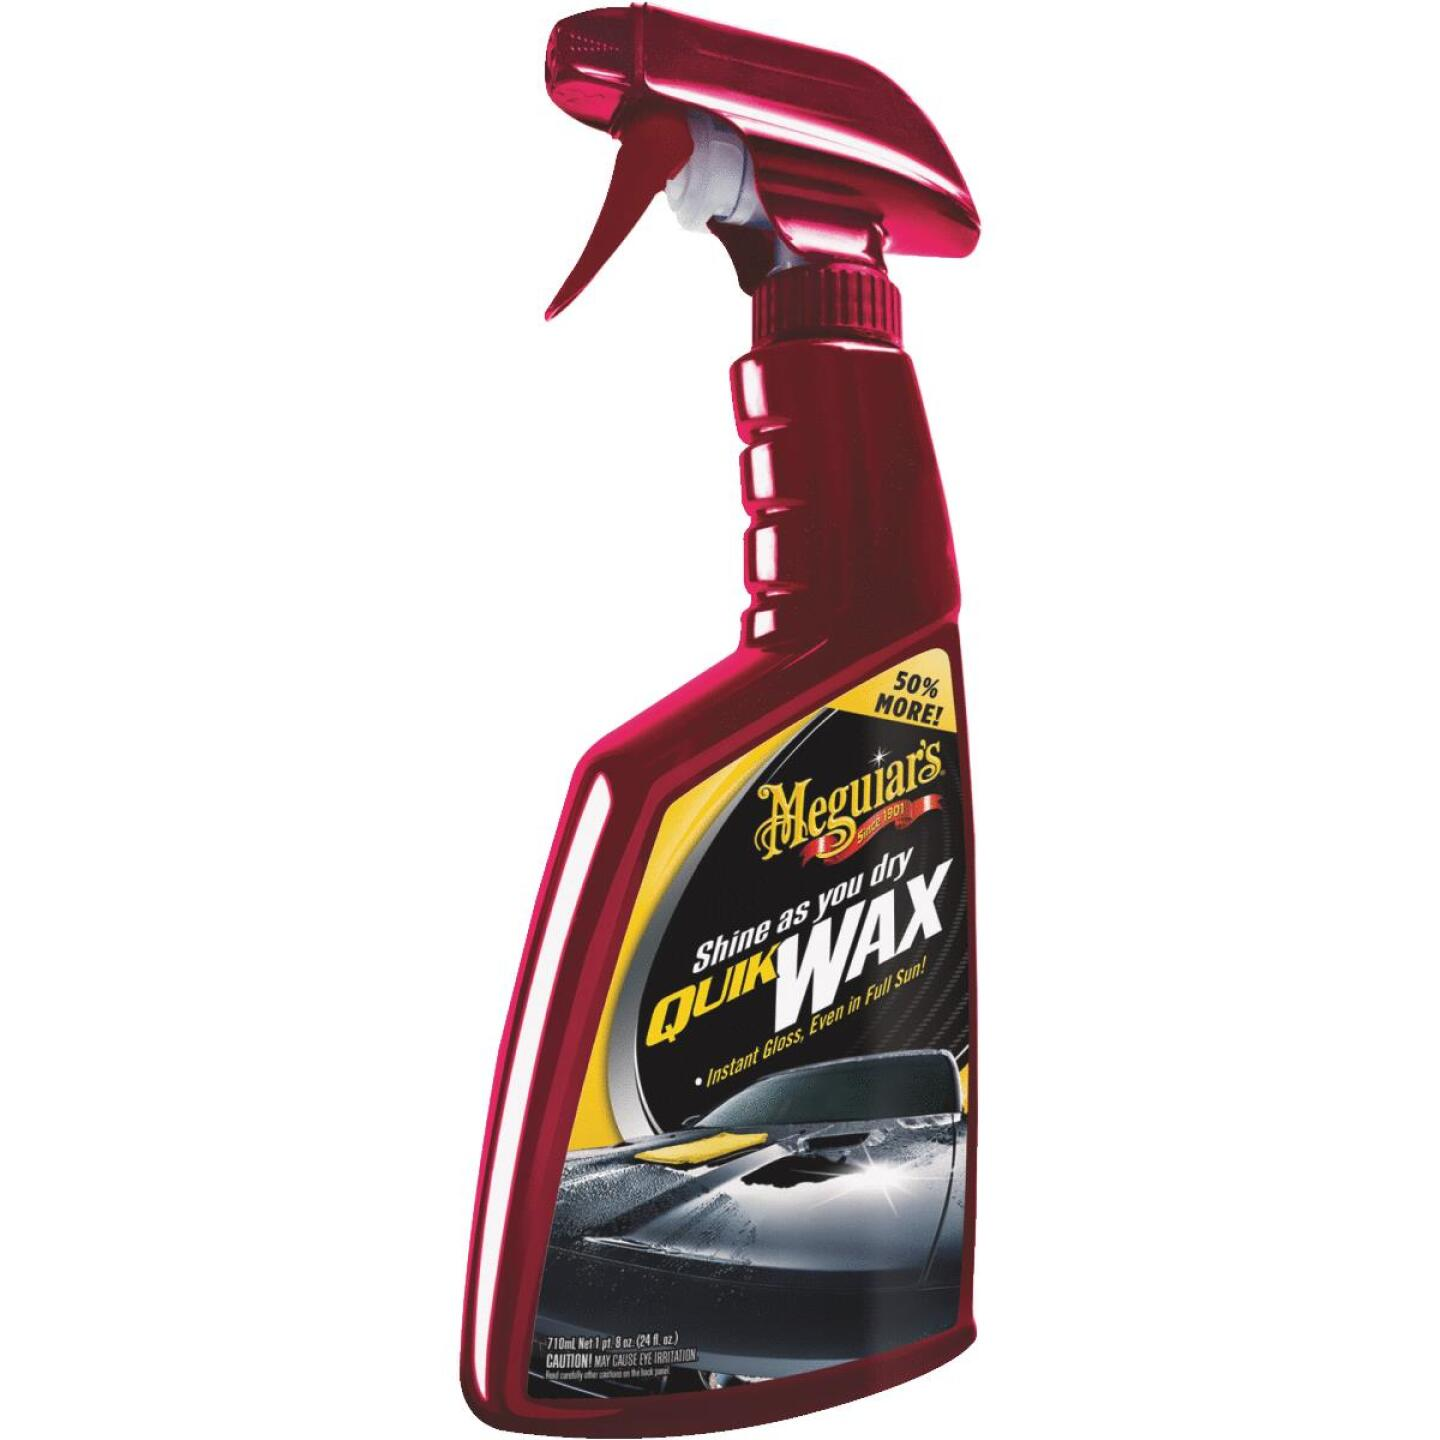 Meguiars Quik Wax 24 Oz. Trigger Spray Spray Car Wax Image 1